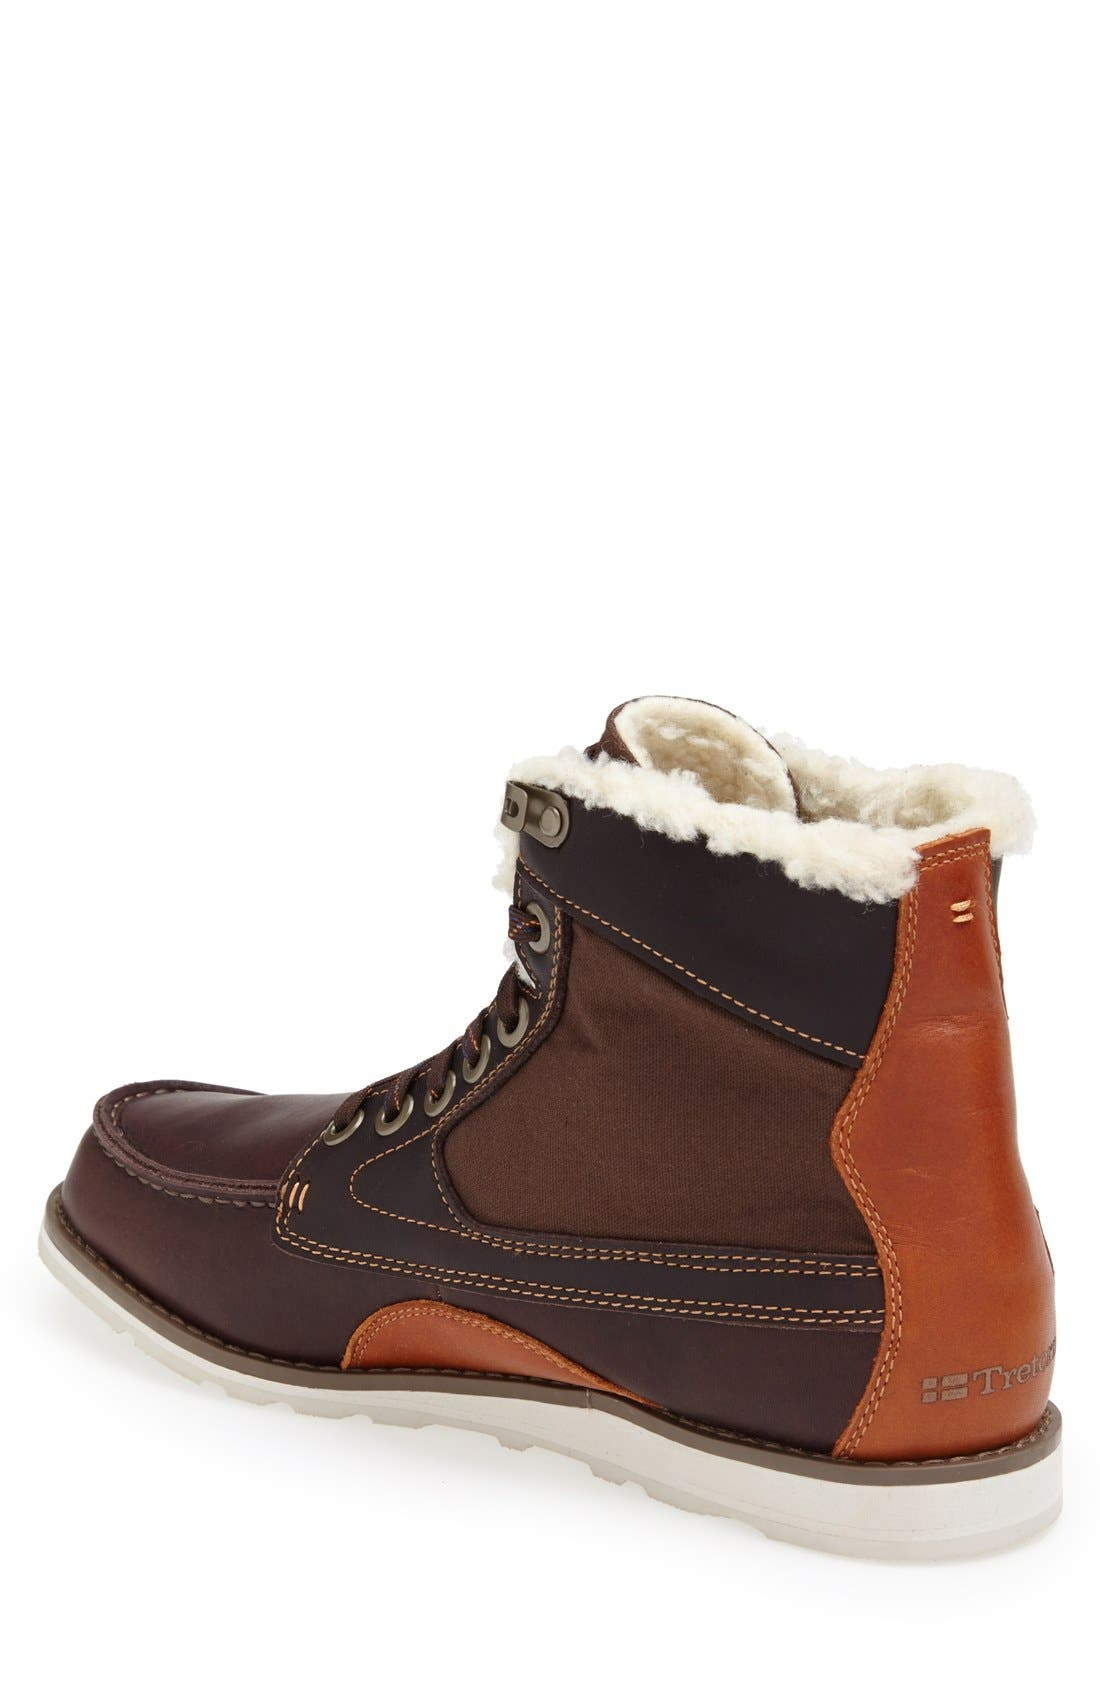 'Gärde Stövel Vinter GTX' Boot,                             Alternate thumbnail 6, color,